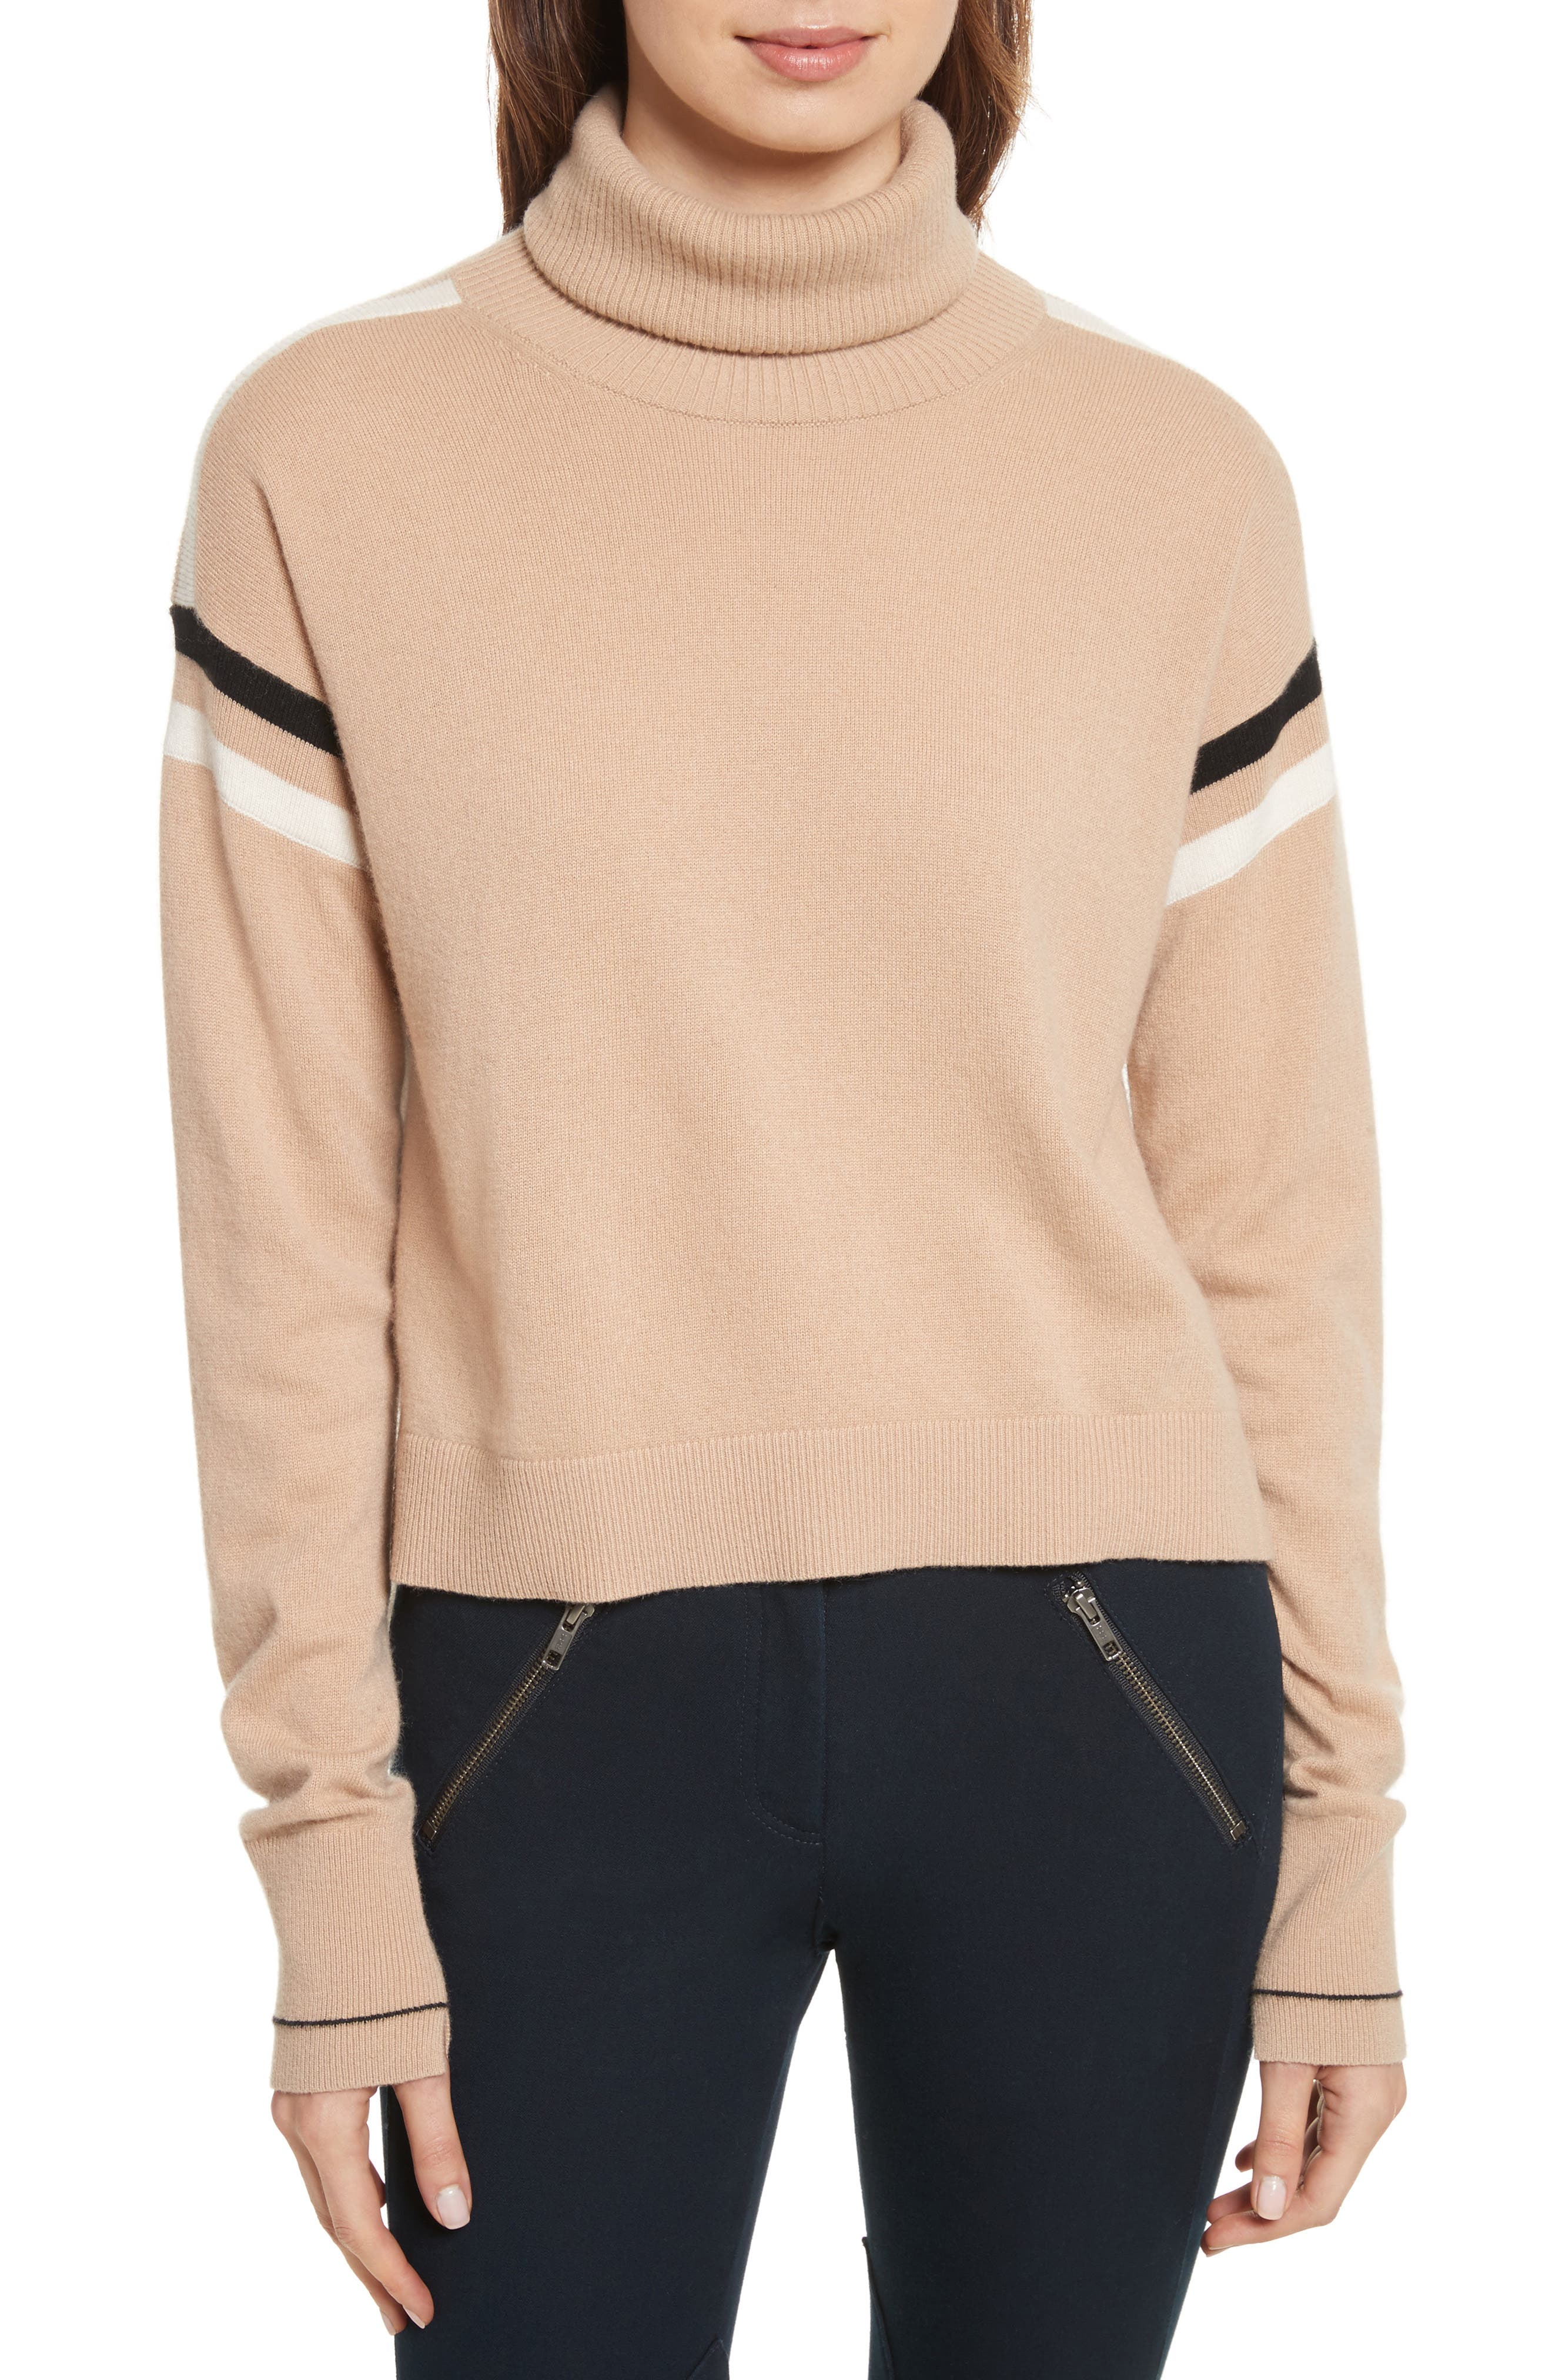 Canter Cashmere Turtleneck,                             Main thumbnail 1, color,                             Camel/ Ivory/ Black